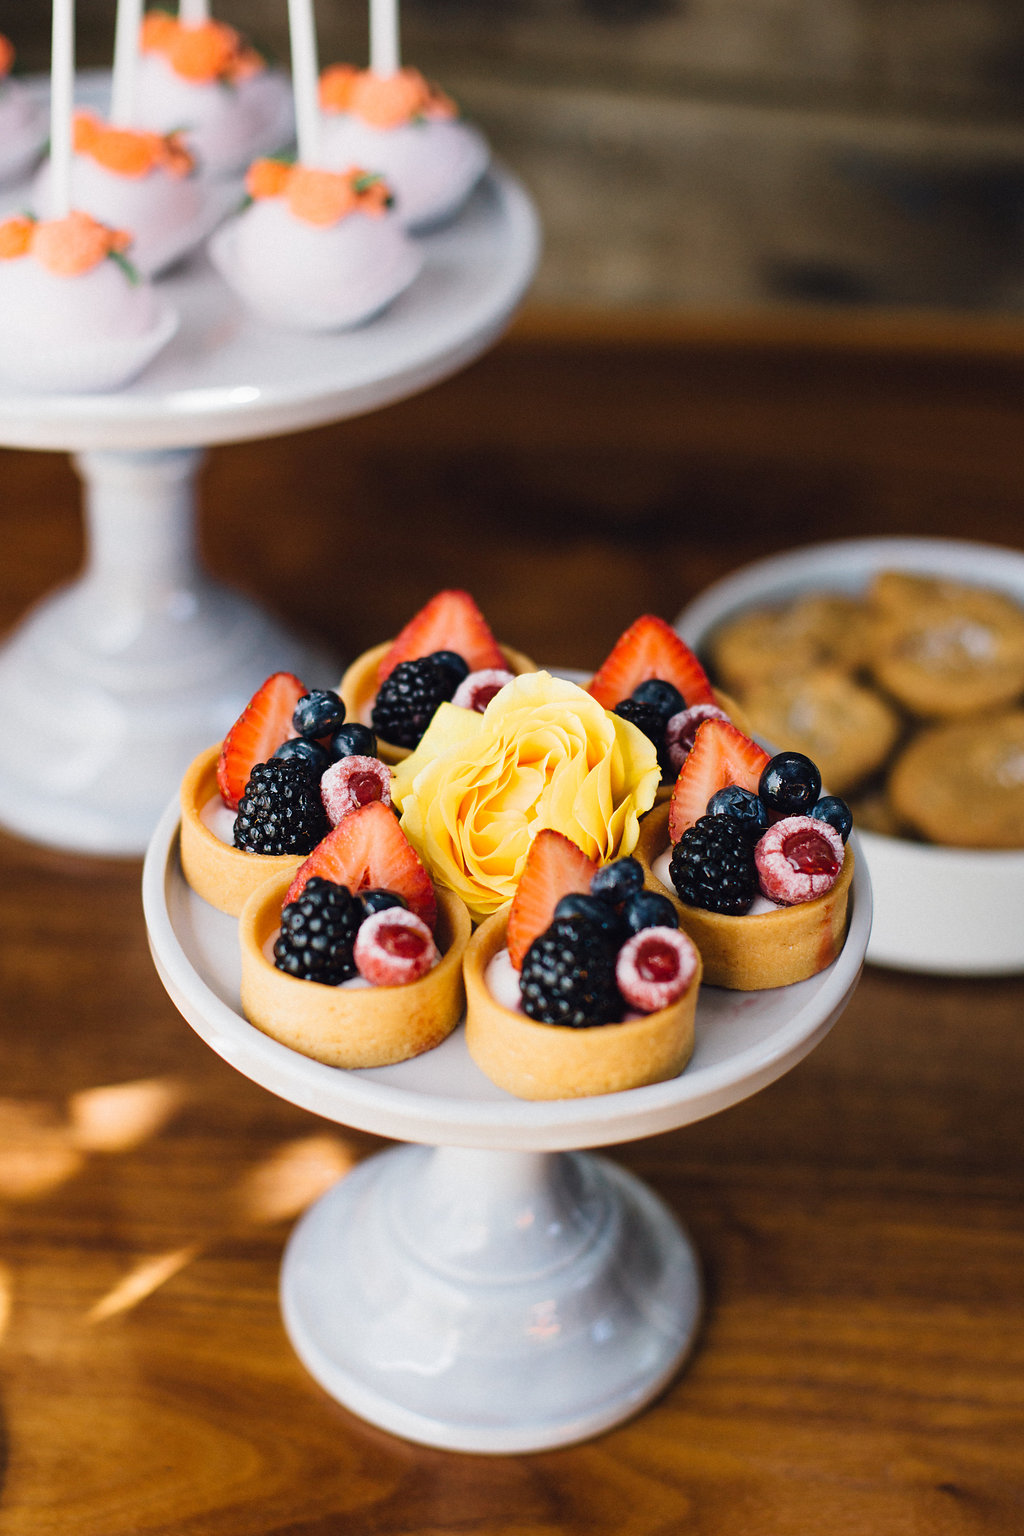 Fruit tarts provide a pop of color to the dessert spread.